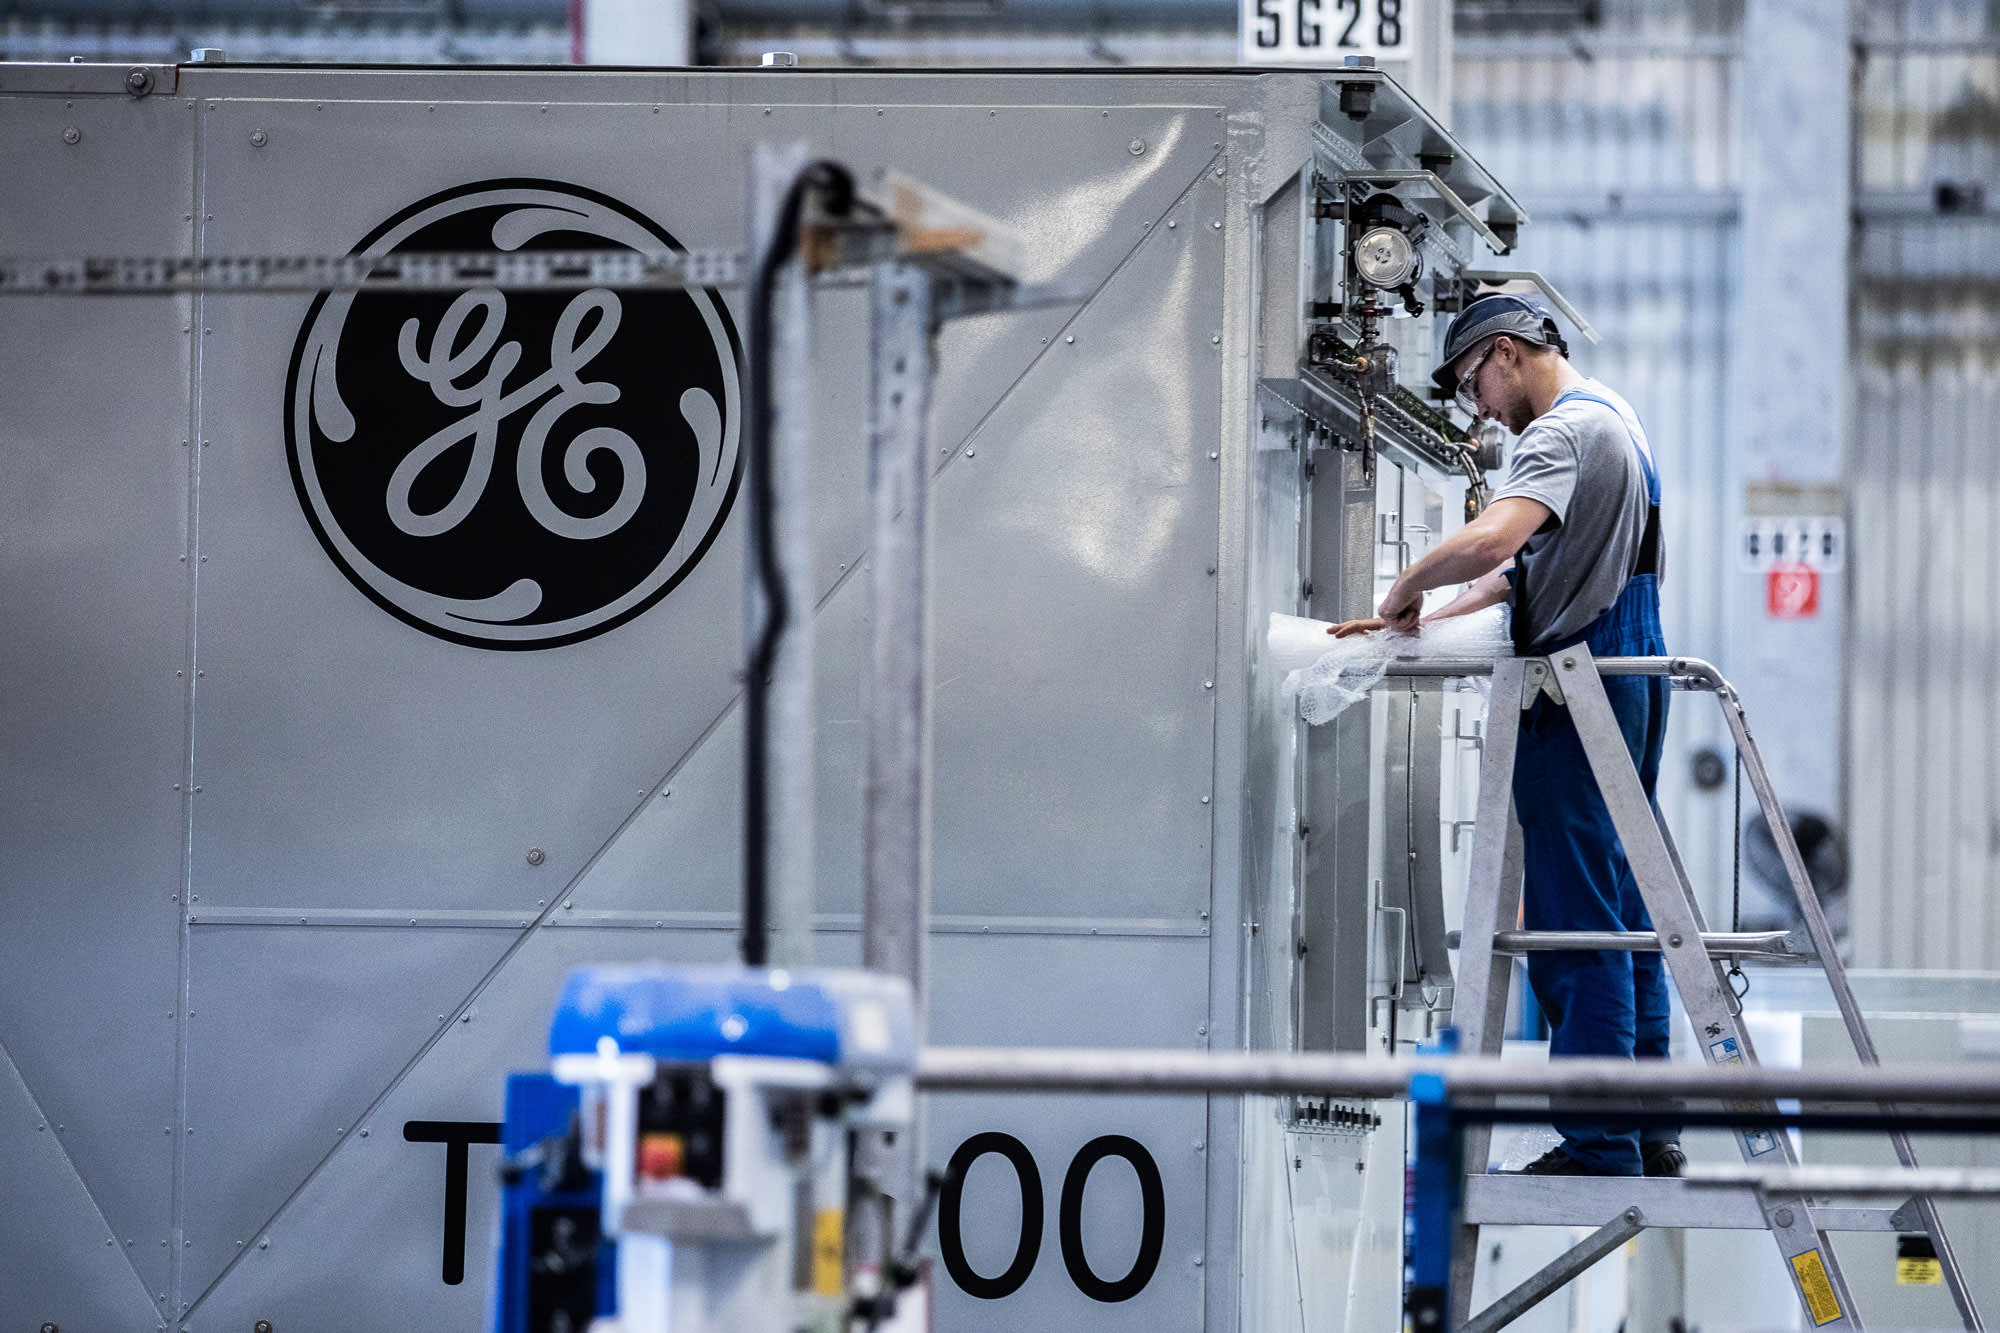 Companies like GE that tout their dividend is a red flag